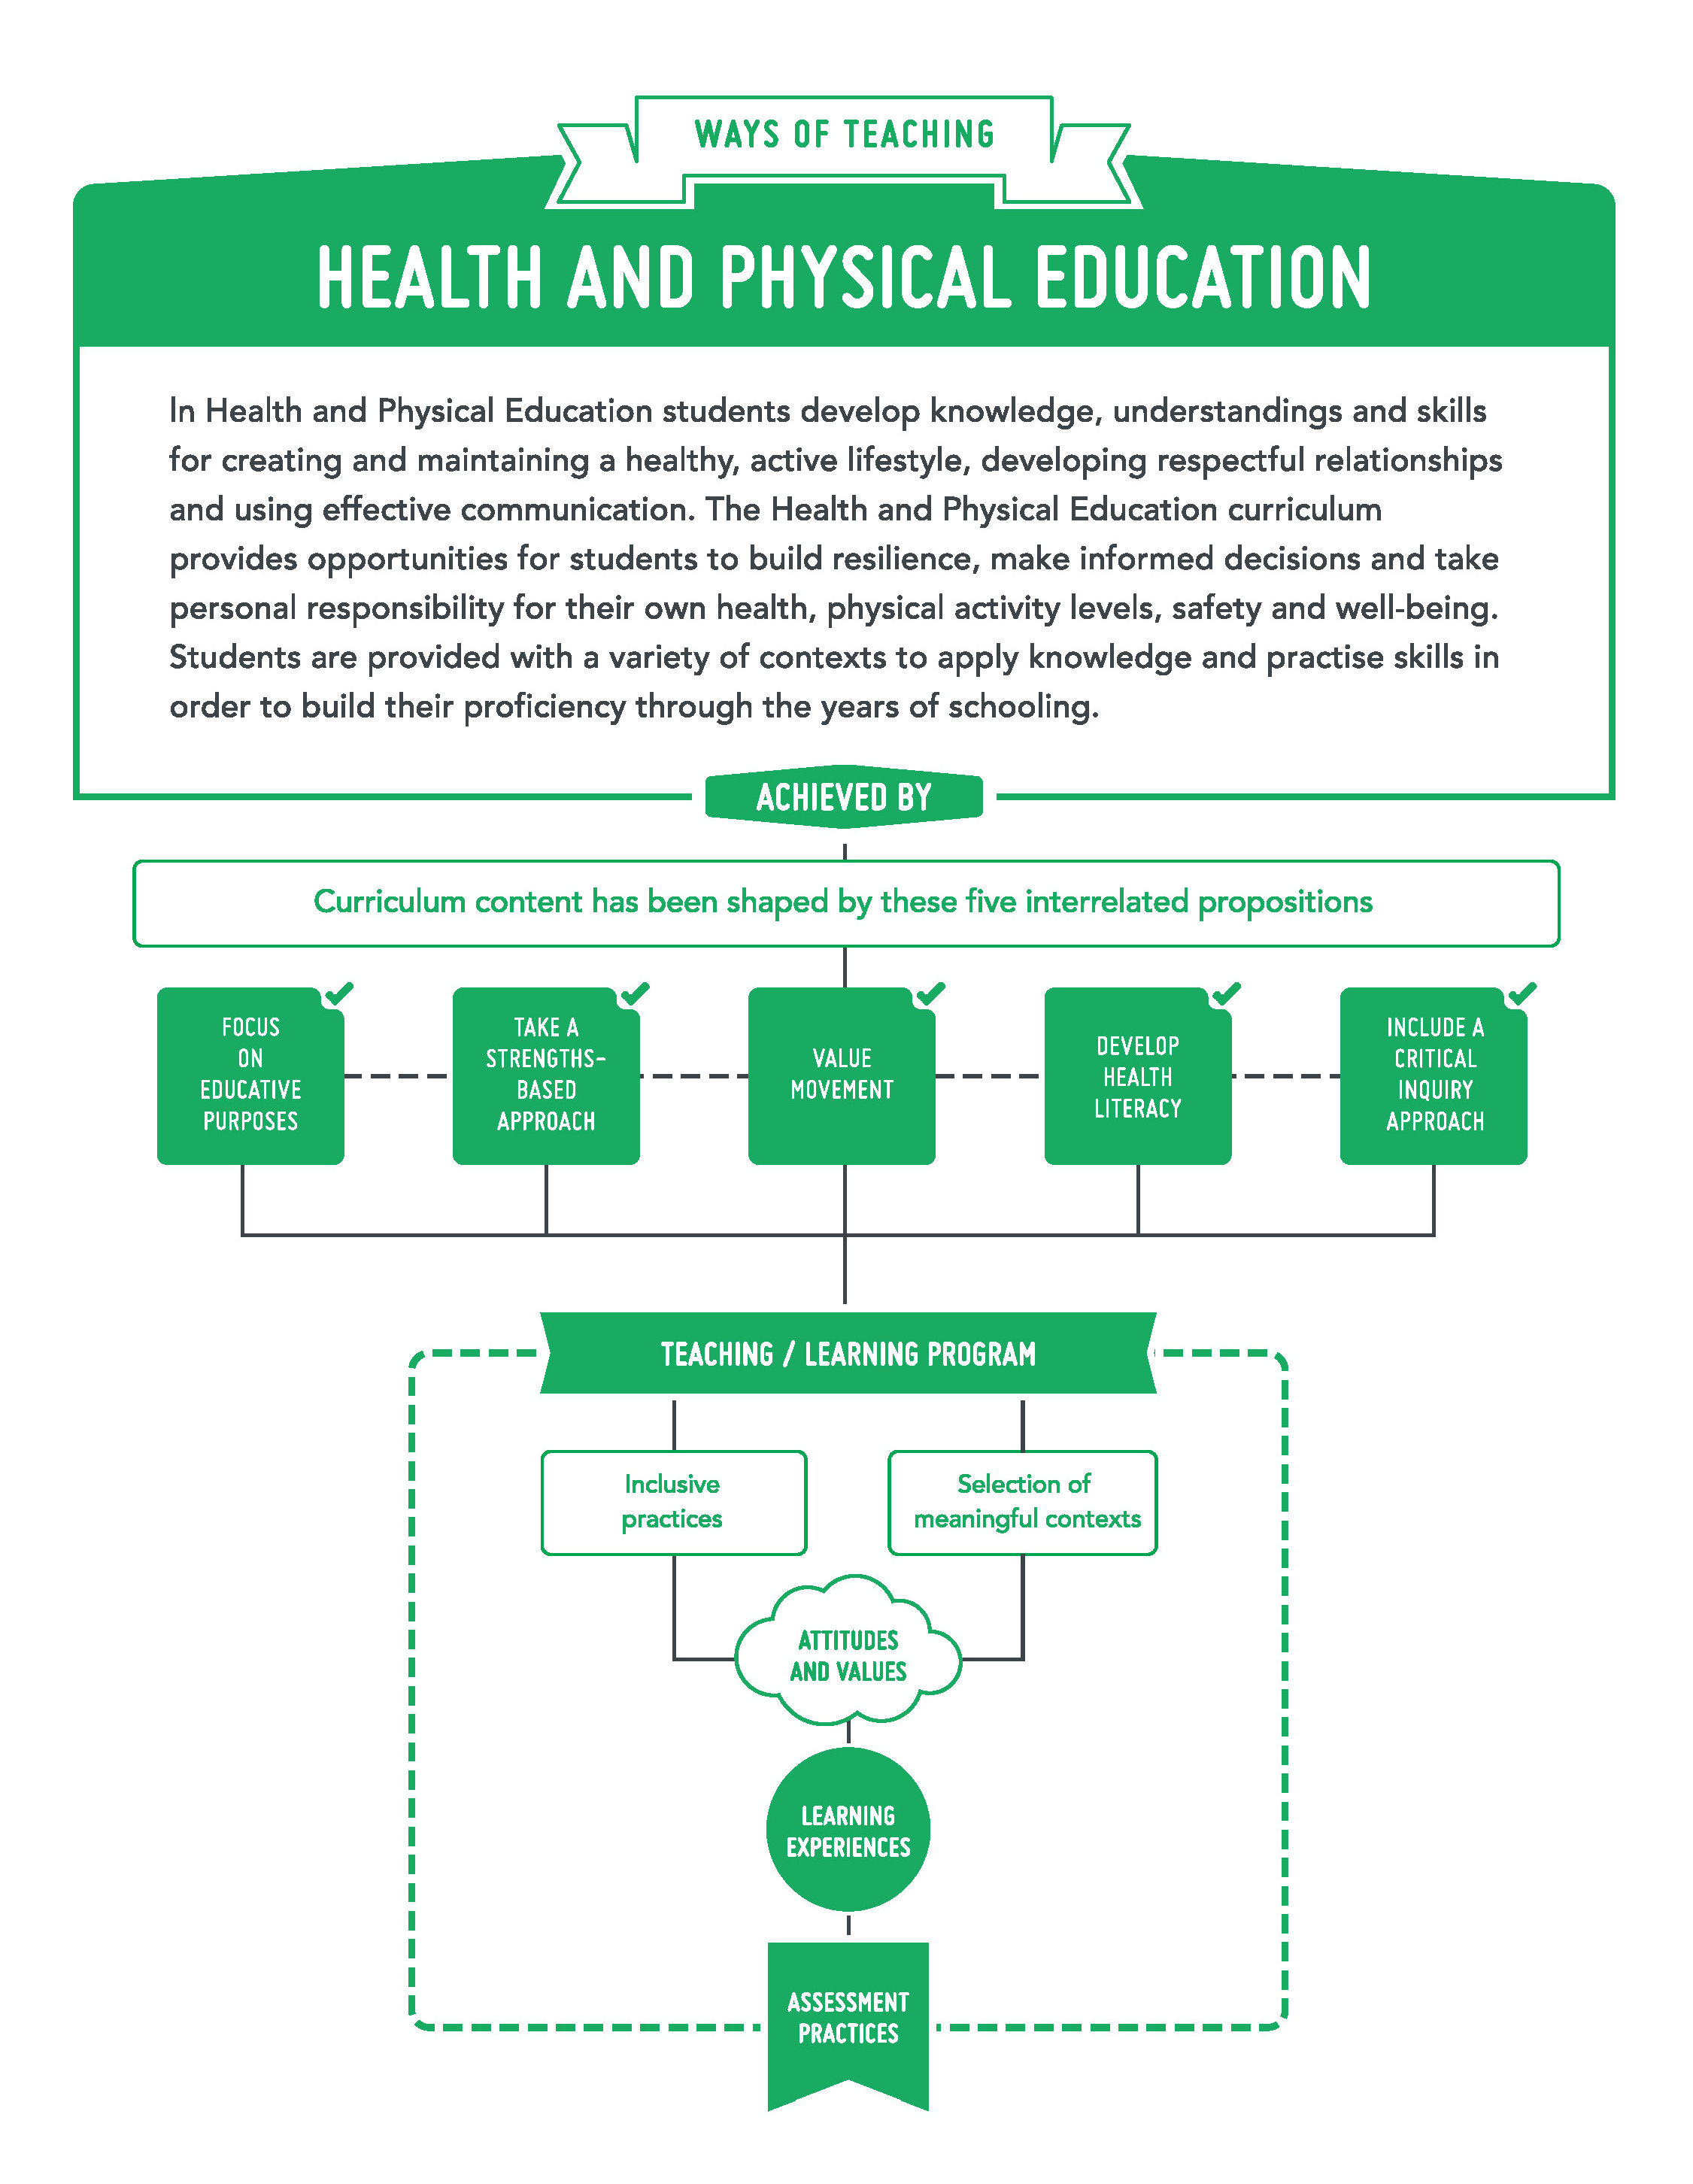 Health and Physical Education - Ways of Teaching